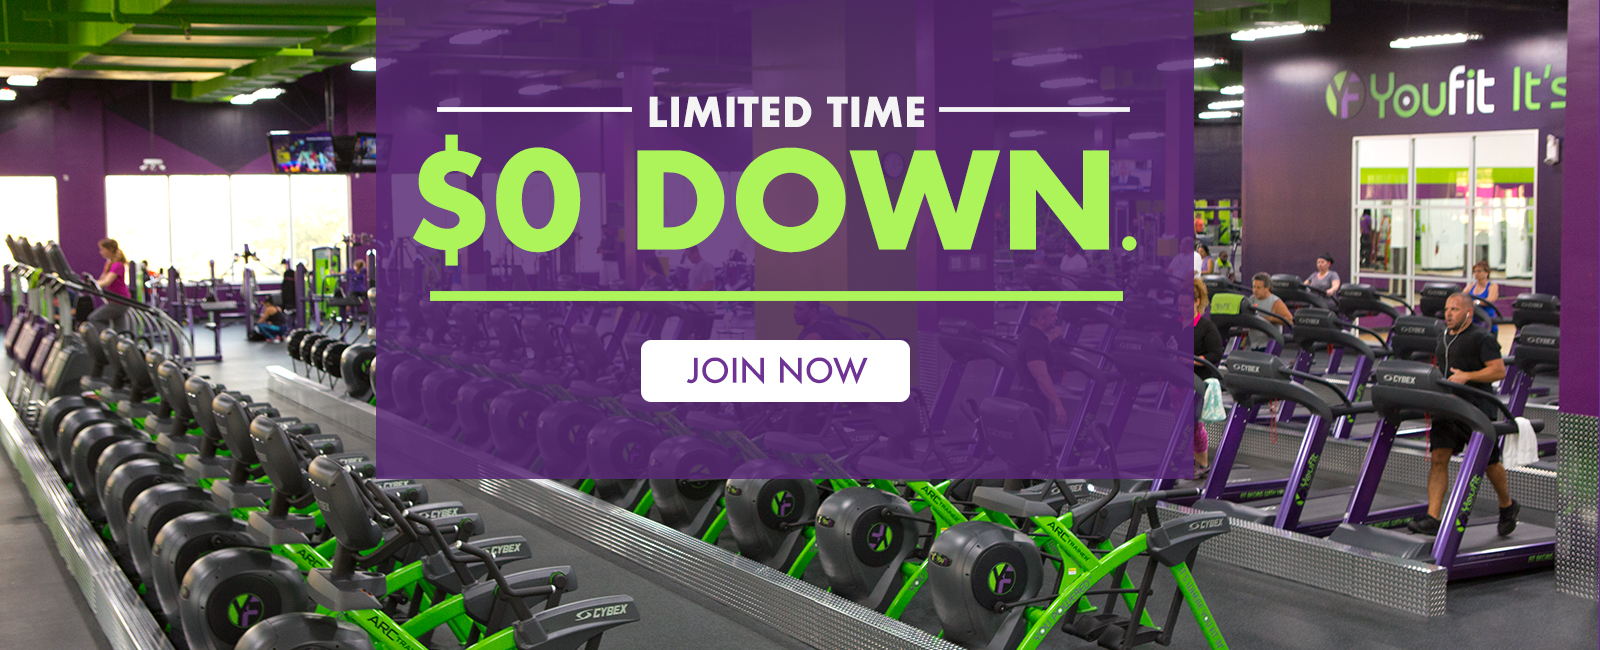 Join Now For $0 Down! Offer Expires 1/15